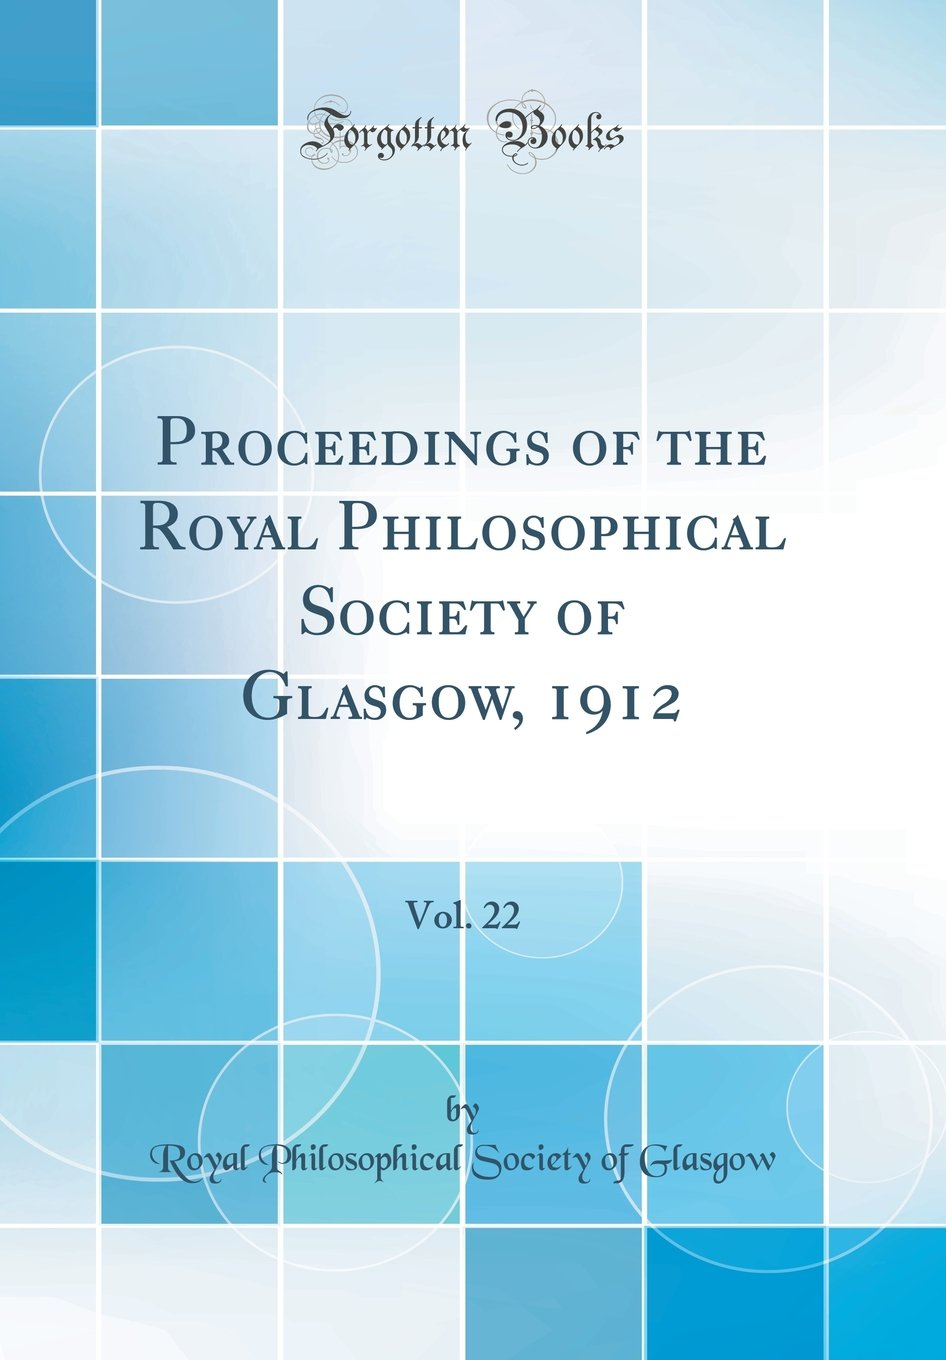 Proceedings of the Royal Philosophical Society of Glasgow, 1912, Vol. 22 (Classic Reprint) ebook